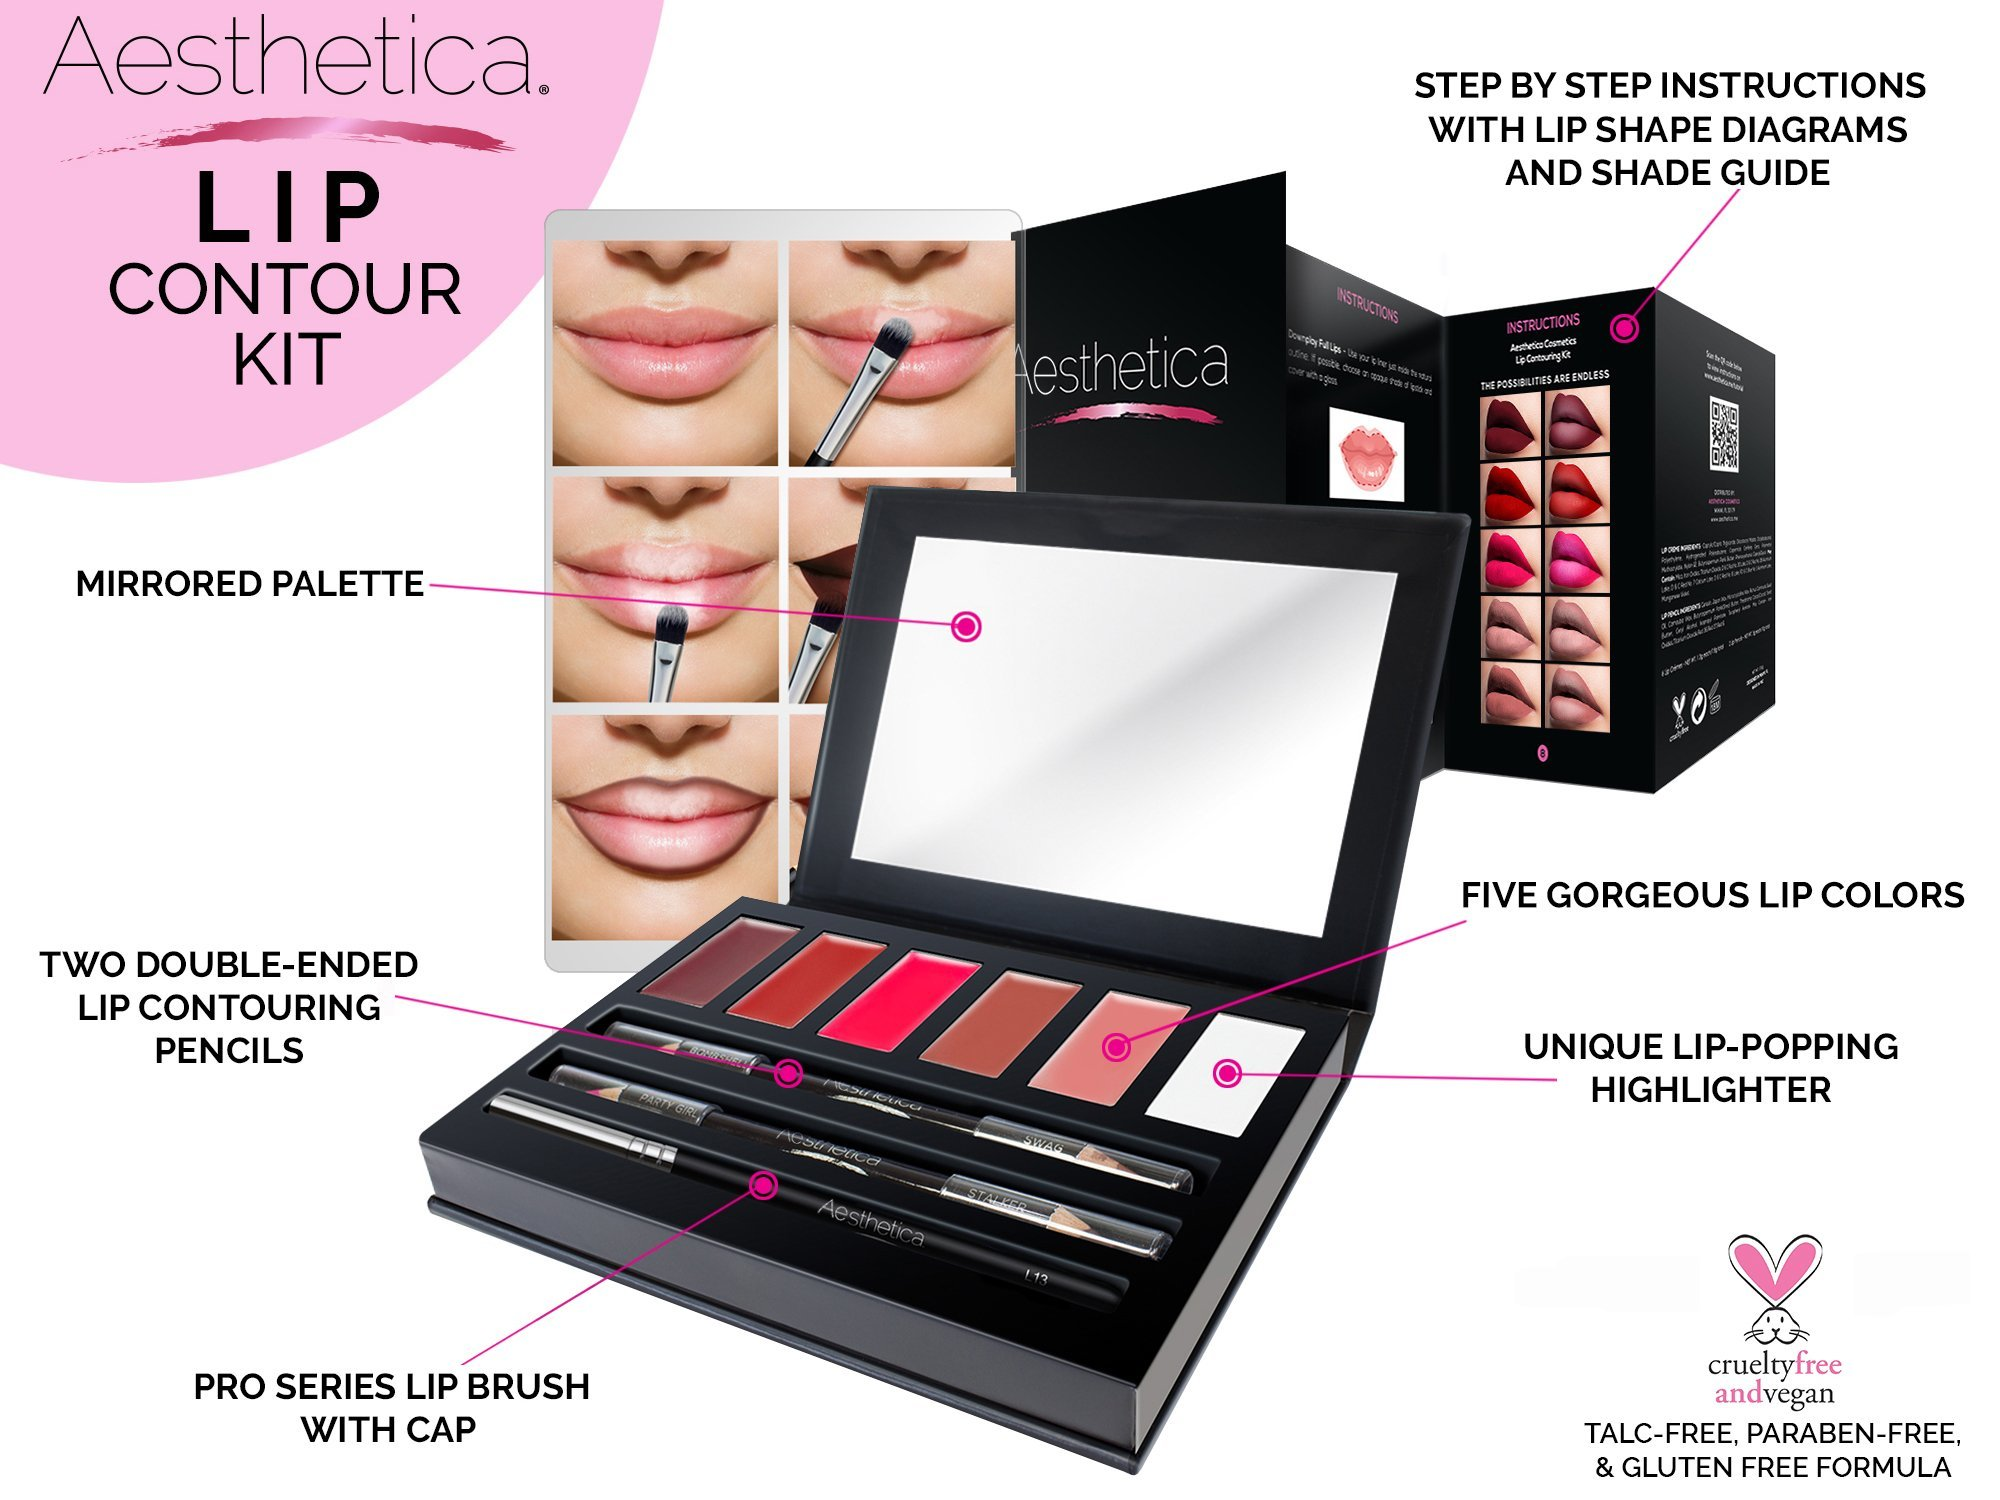 Aesthetica Matte Lip Contour Kit - Lipstick Palette Set Includes 6 Lip Colors, 4 Lip Liners, Lip Brush and Instructions by Aesthetica (Image #2)